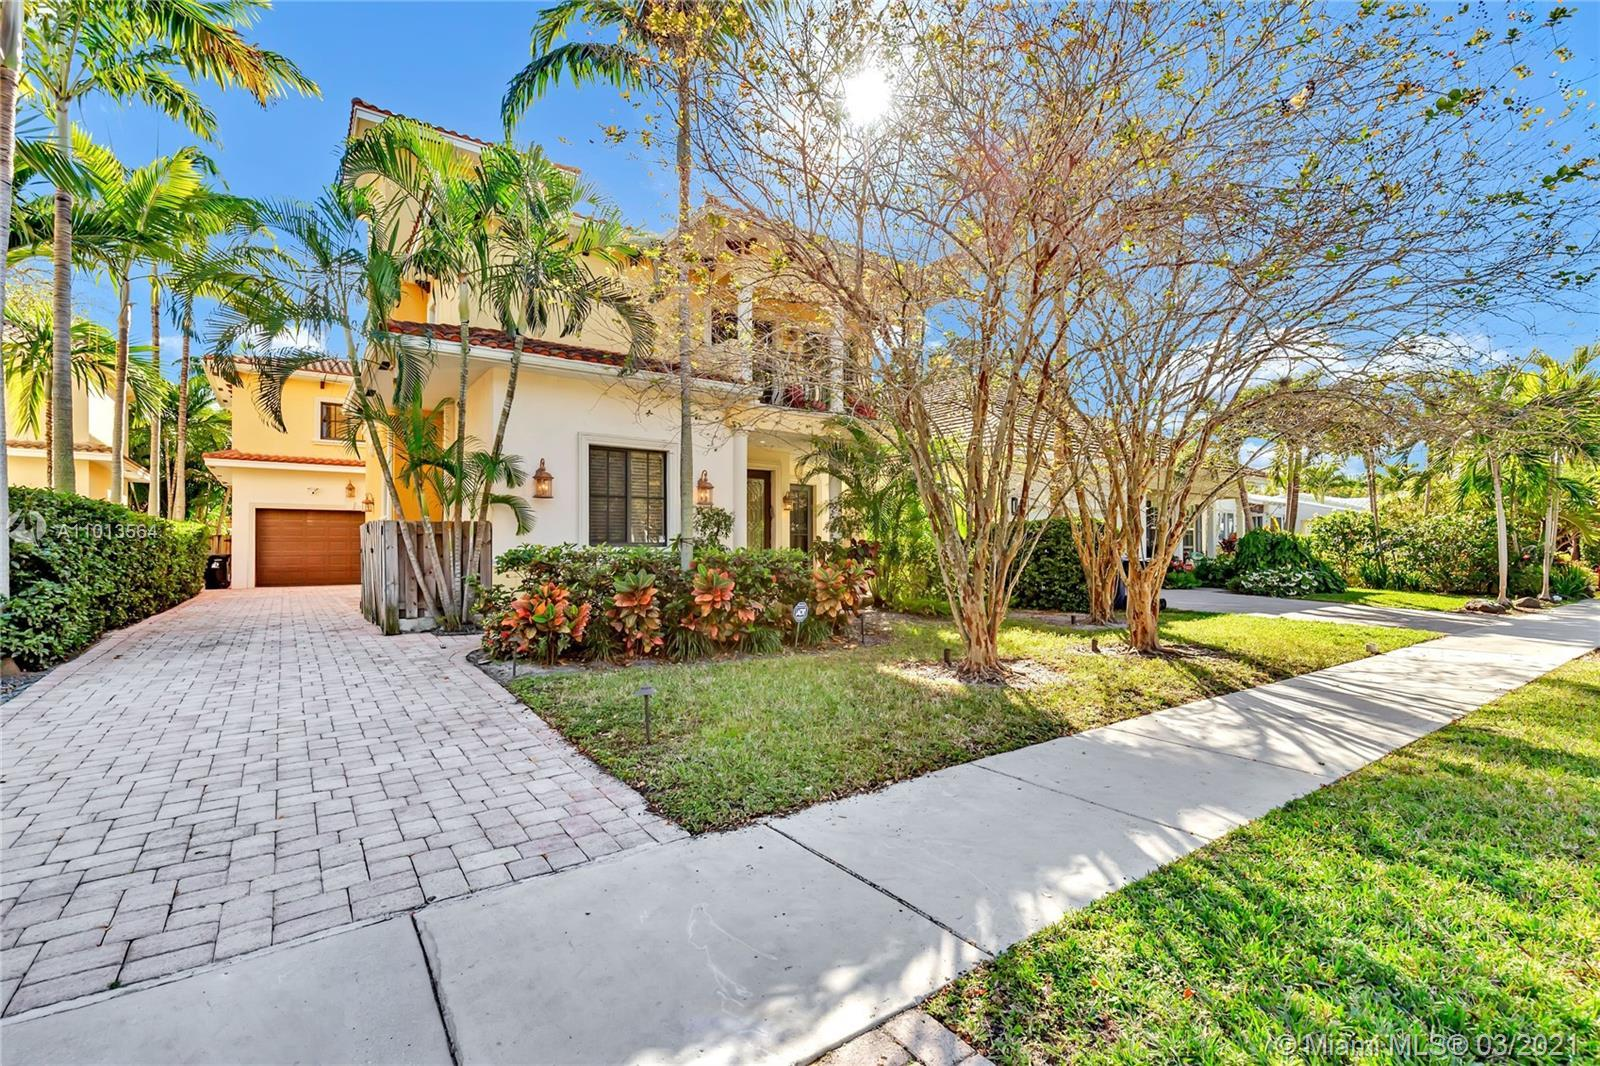 Gorgeous 4/4 pool home with European flair. No detail left untouched with a great location in presti